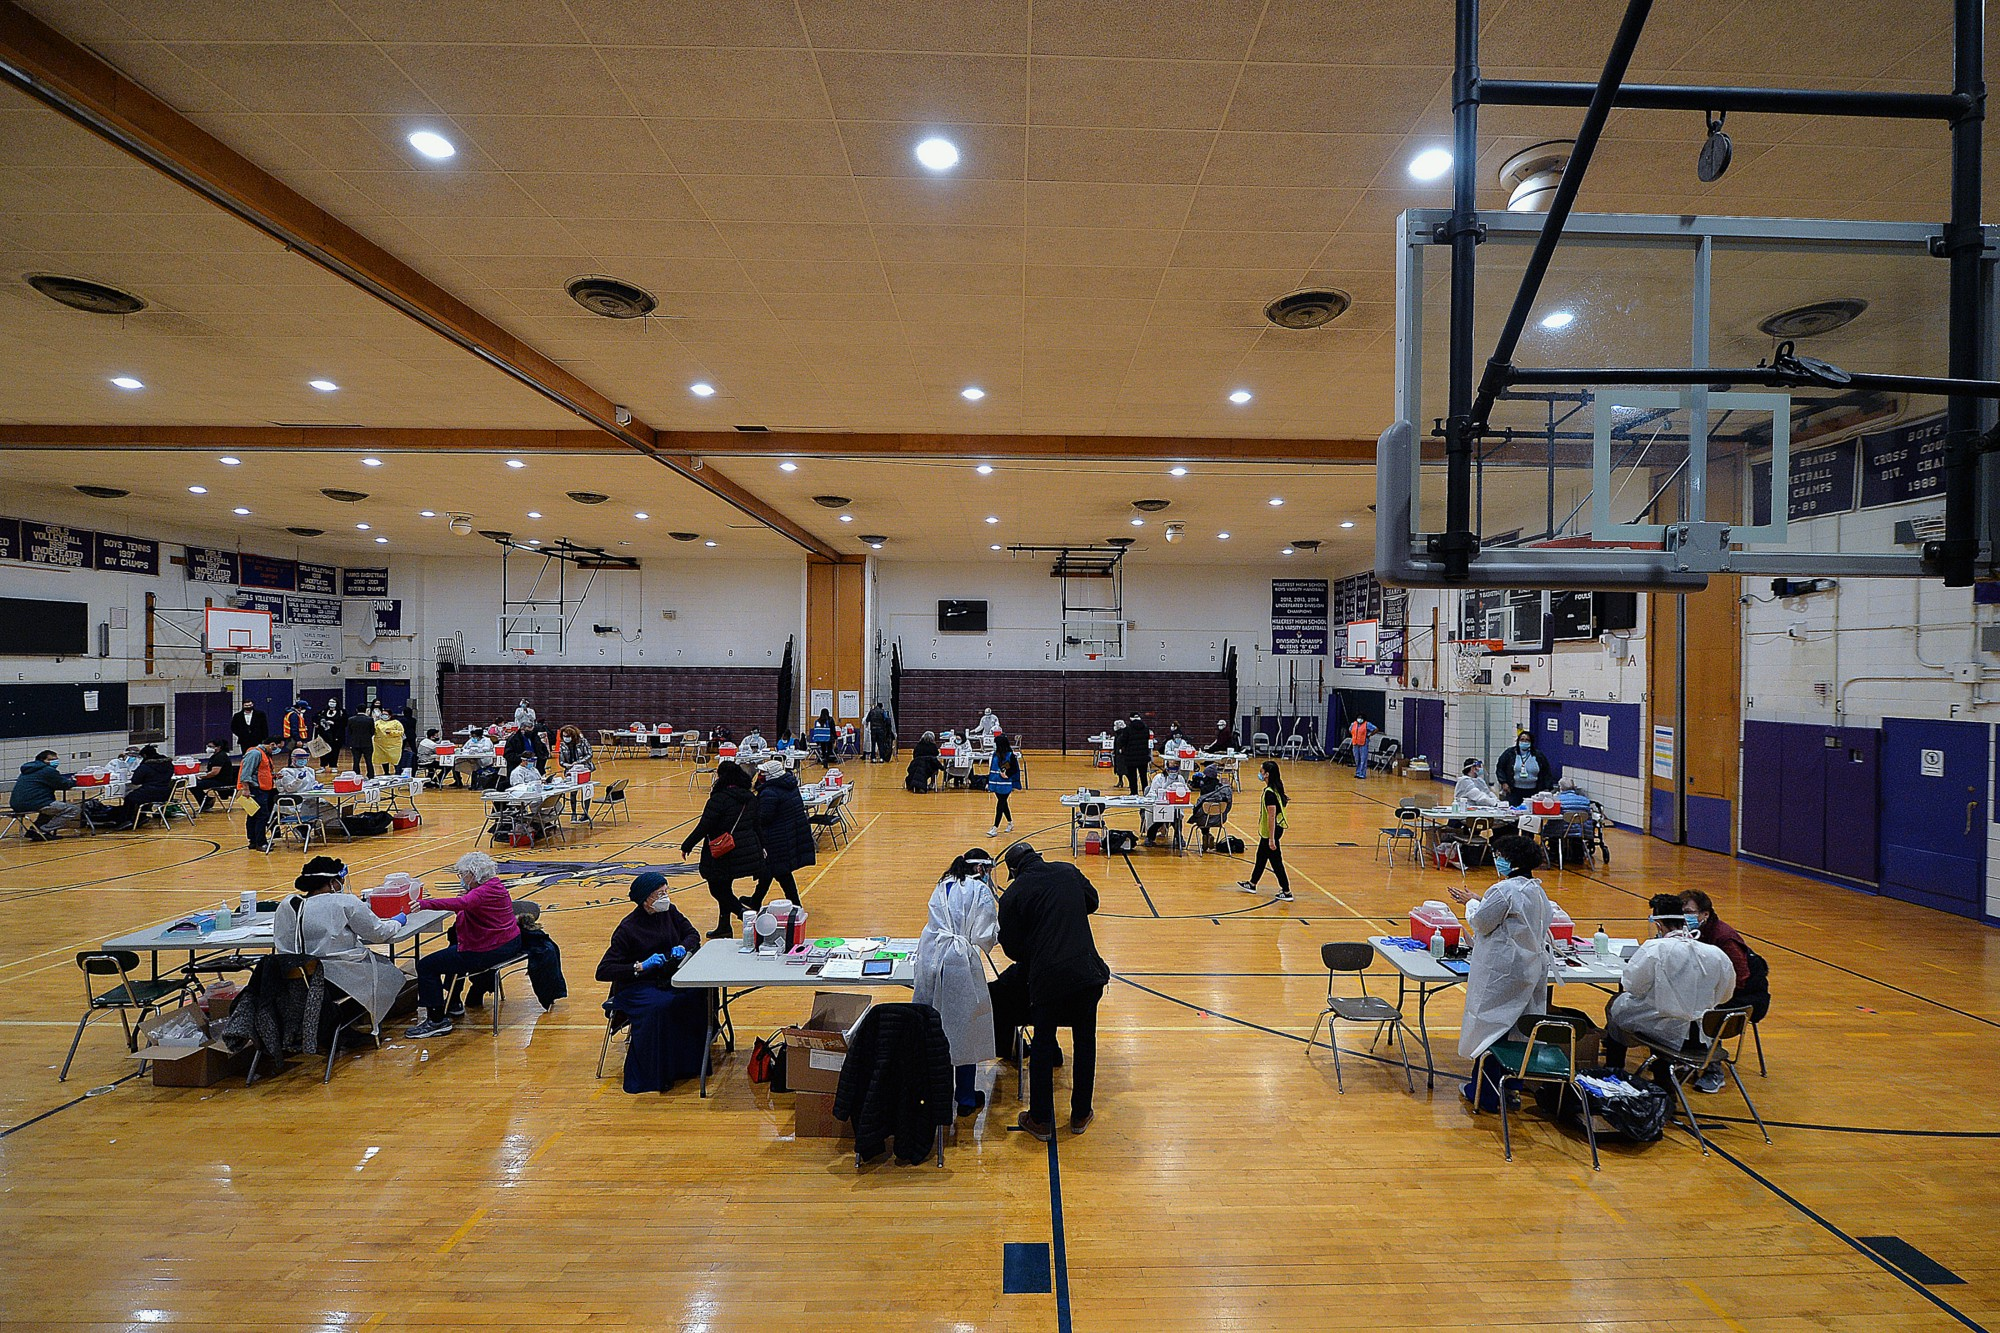 COVID-19 vaccination stations inside Hillcrest High School in Queens, NY, January 11, 2021. Photo by Anthony Behar/Reuters